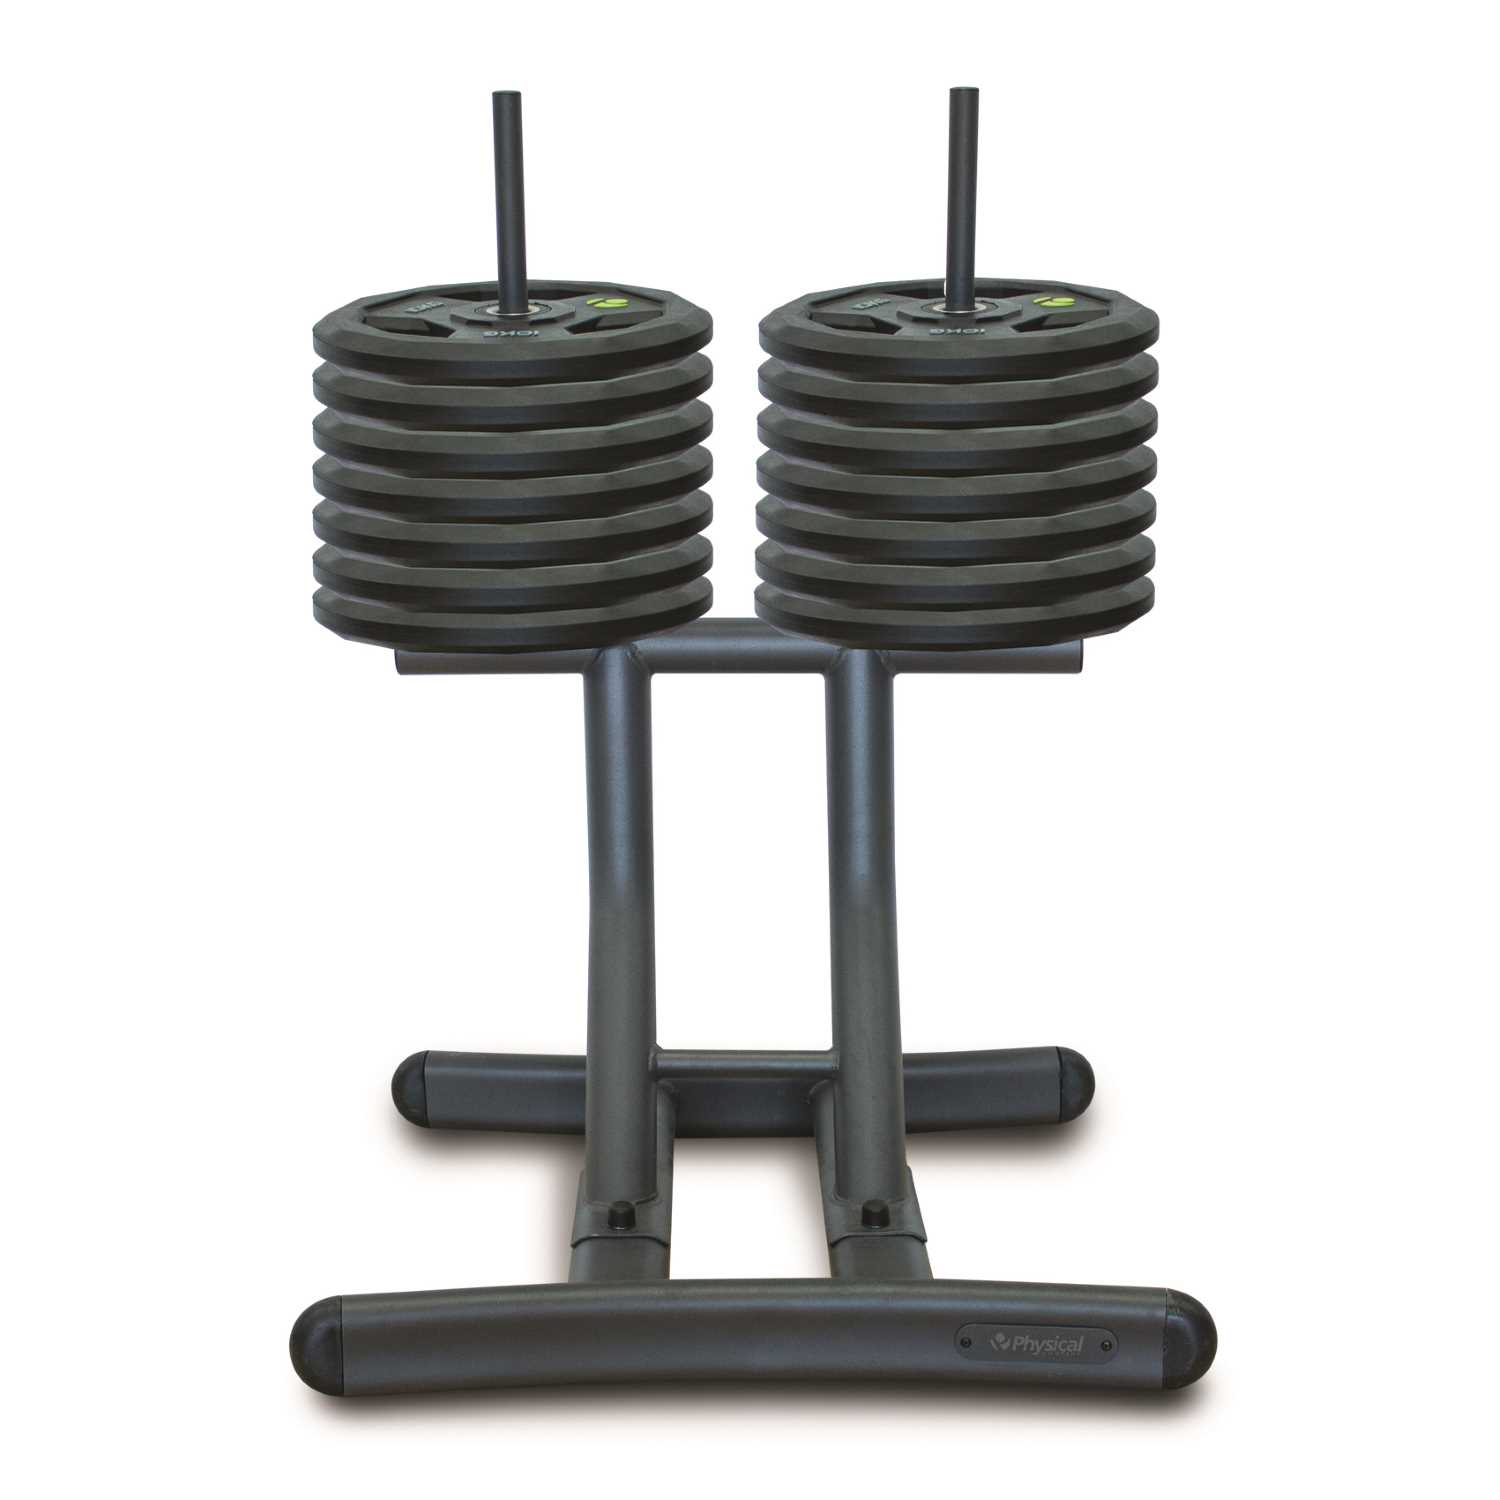 Vertical Disc Rack for 30mm/1